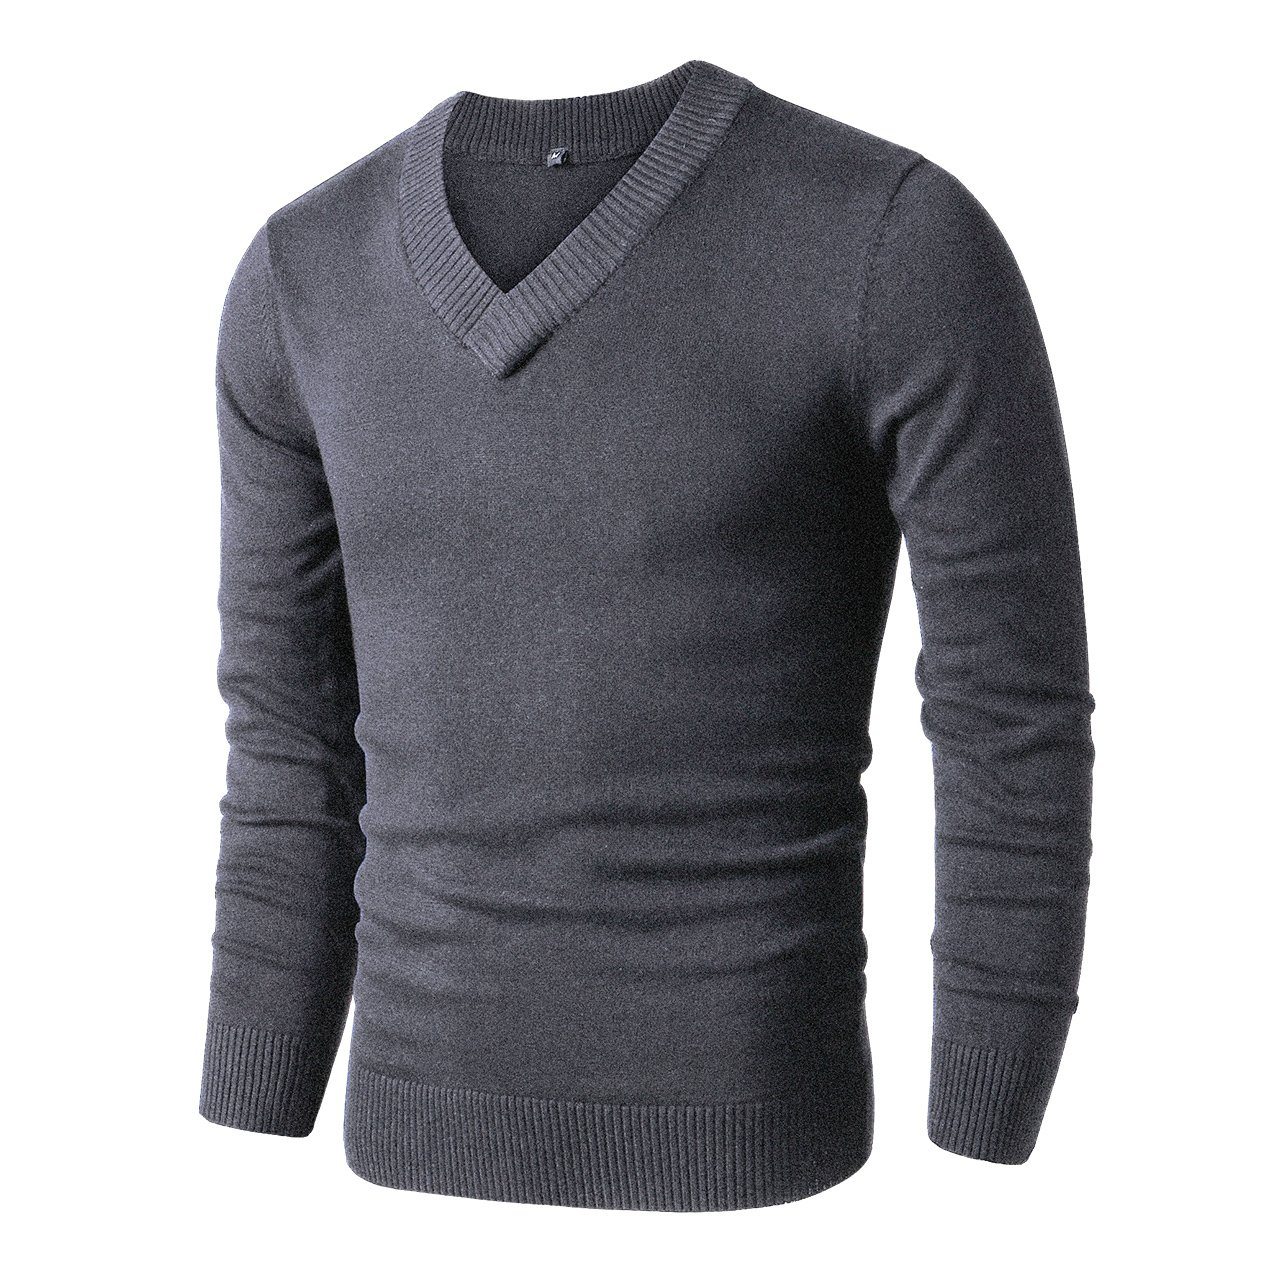 LTIFONE Mens Slim Comfortably Knitted Long Sleeve V-Neck Sweaters (L,Dark Grey) by LTIFONE